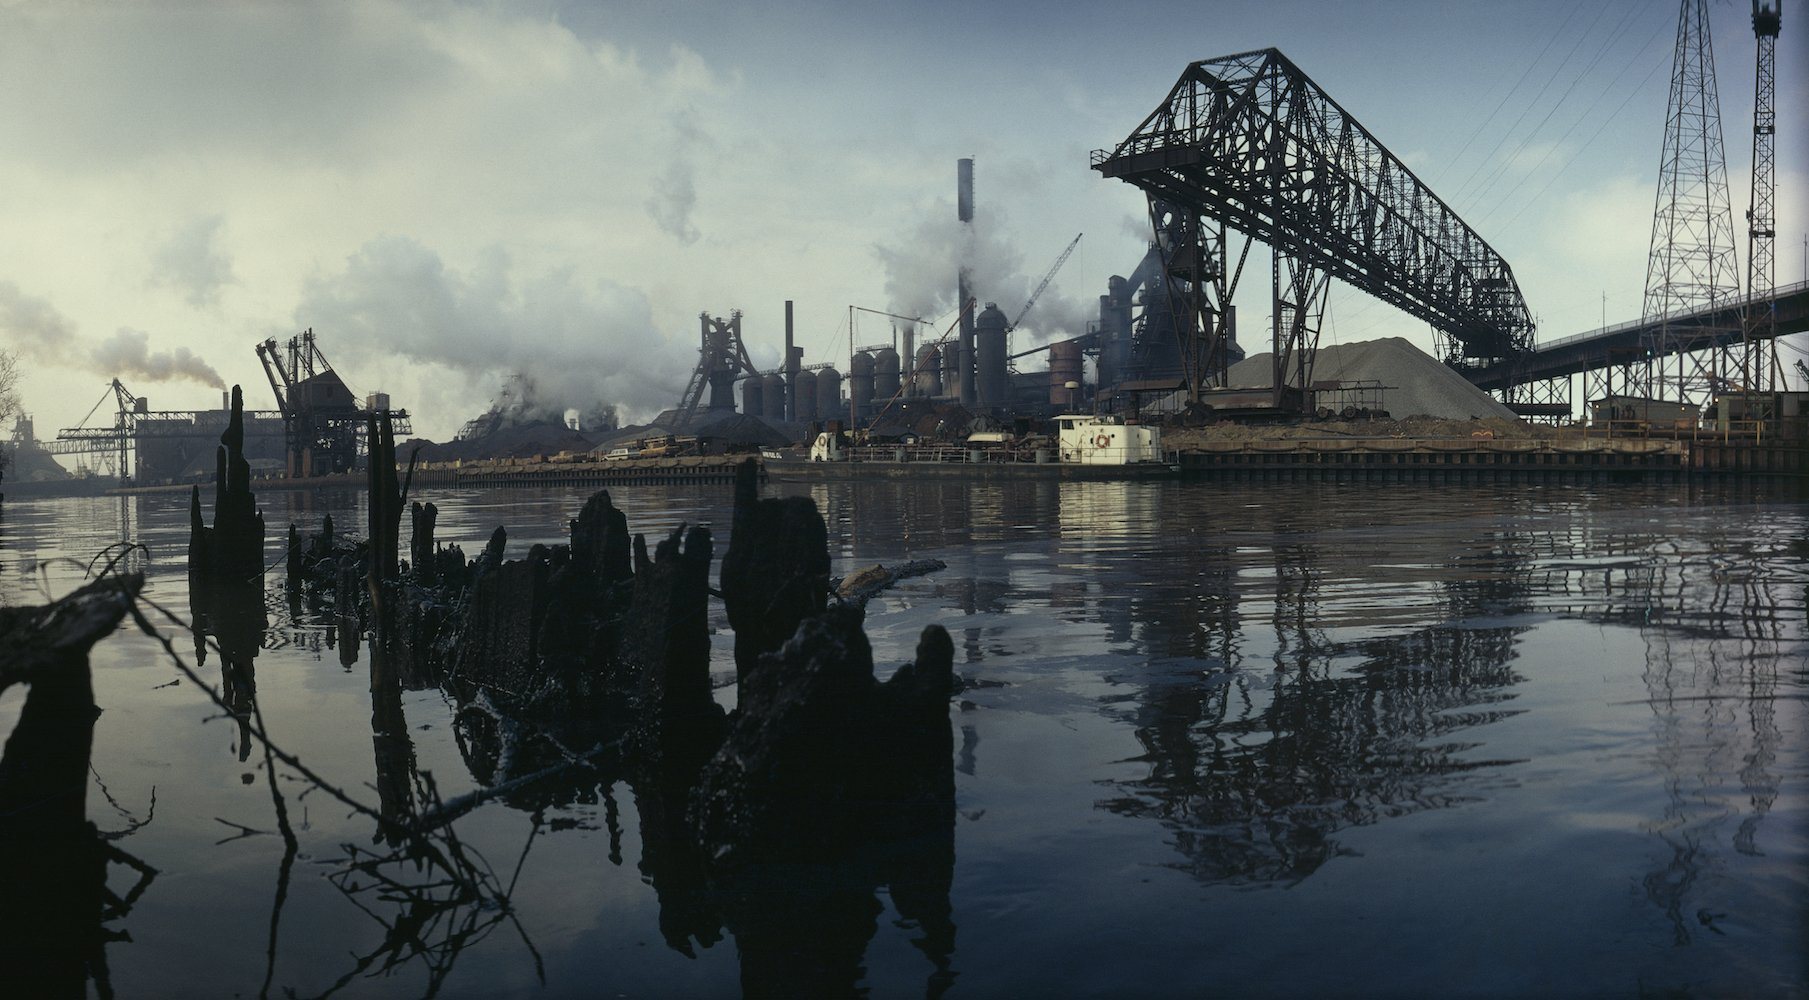 Oral Histories of the 1969 Cuyahoga River Fire